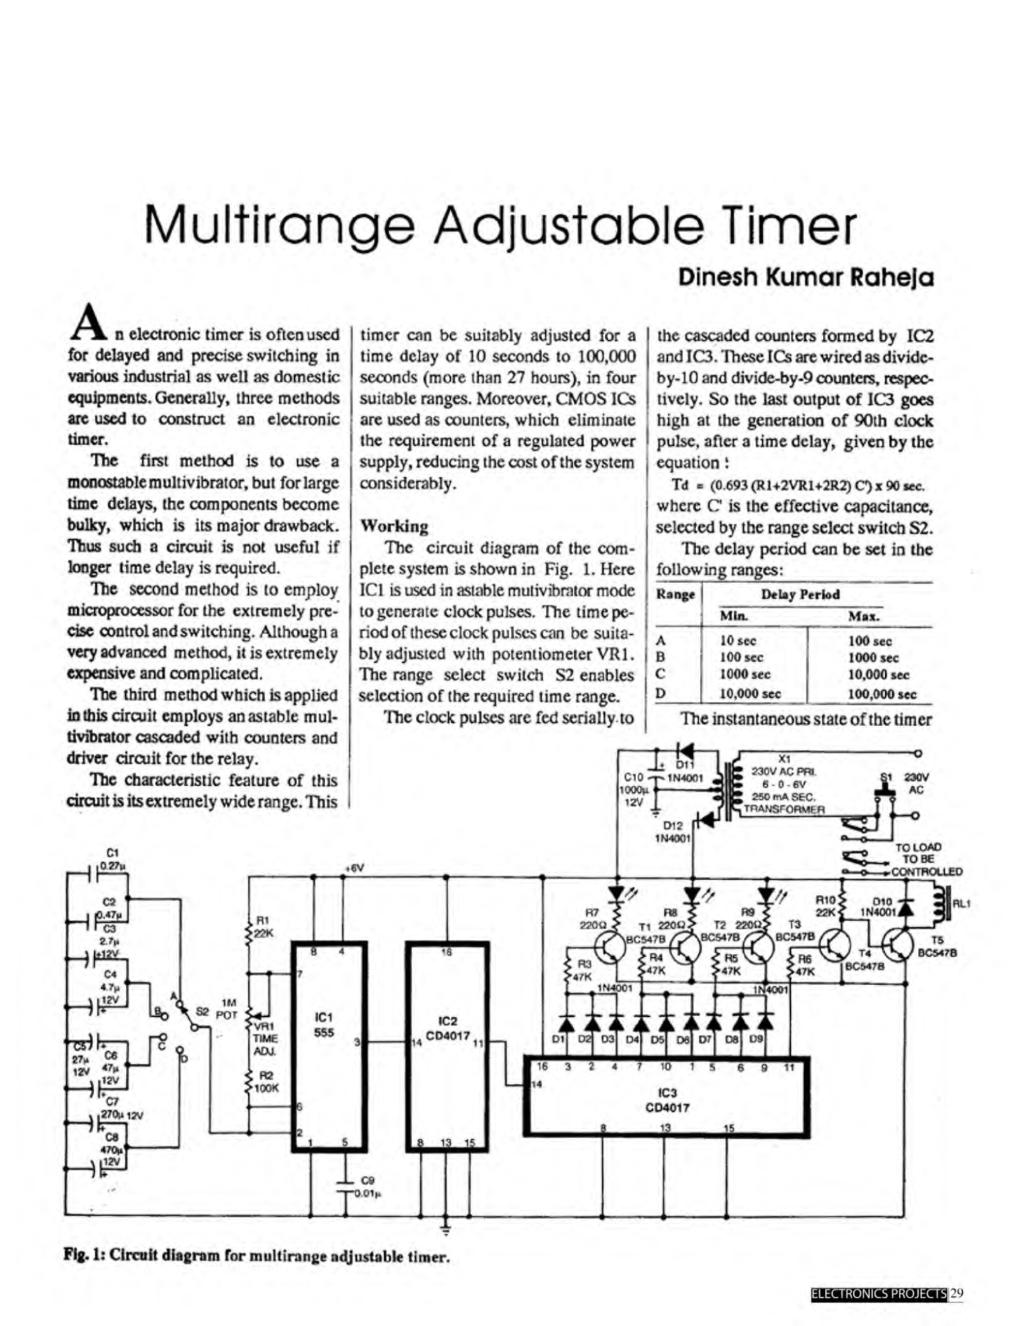 A Compilation Of 102 And Circuit Ideas For Construction Projects 555 Timer Bistable Multivibrator Technology Hacking Multirange Adjustable Tinner Dinesh Kumar Raheja Aam N Electronic Is Often Used Delayed